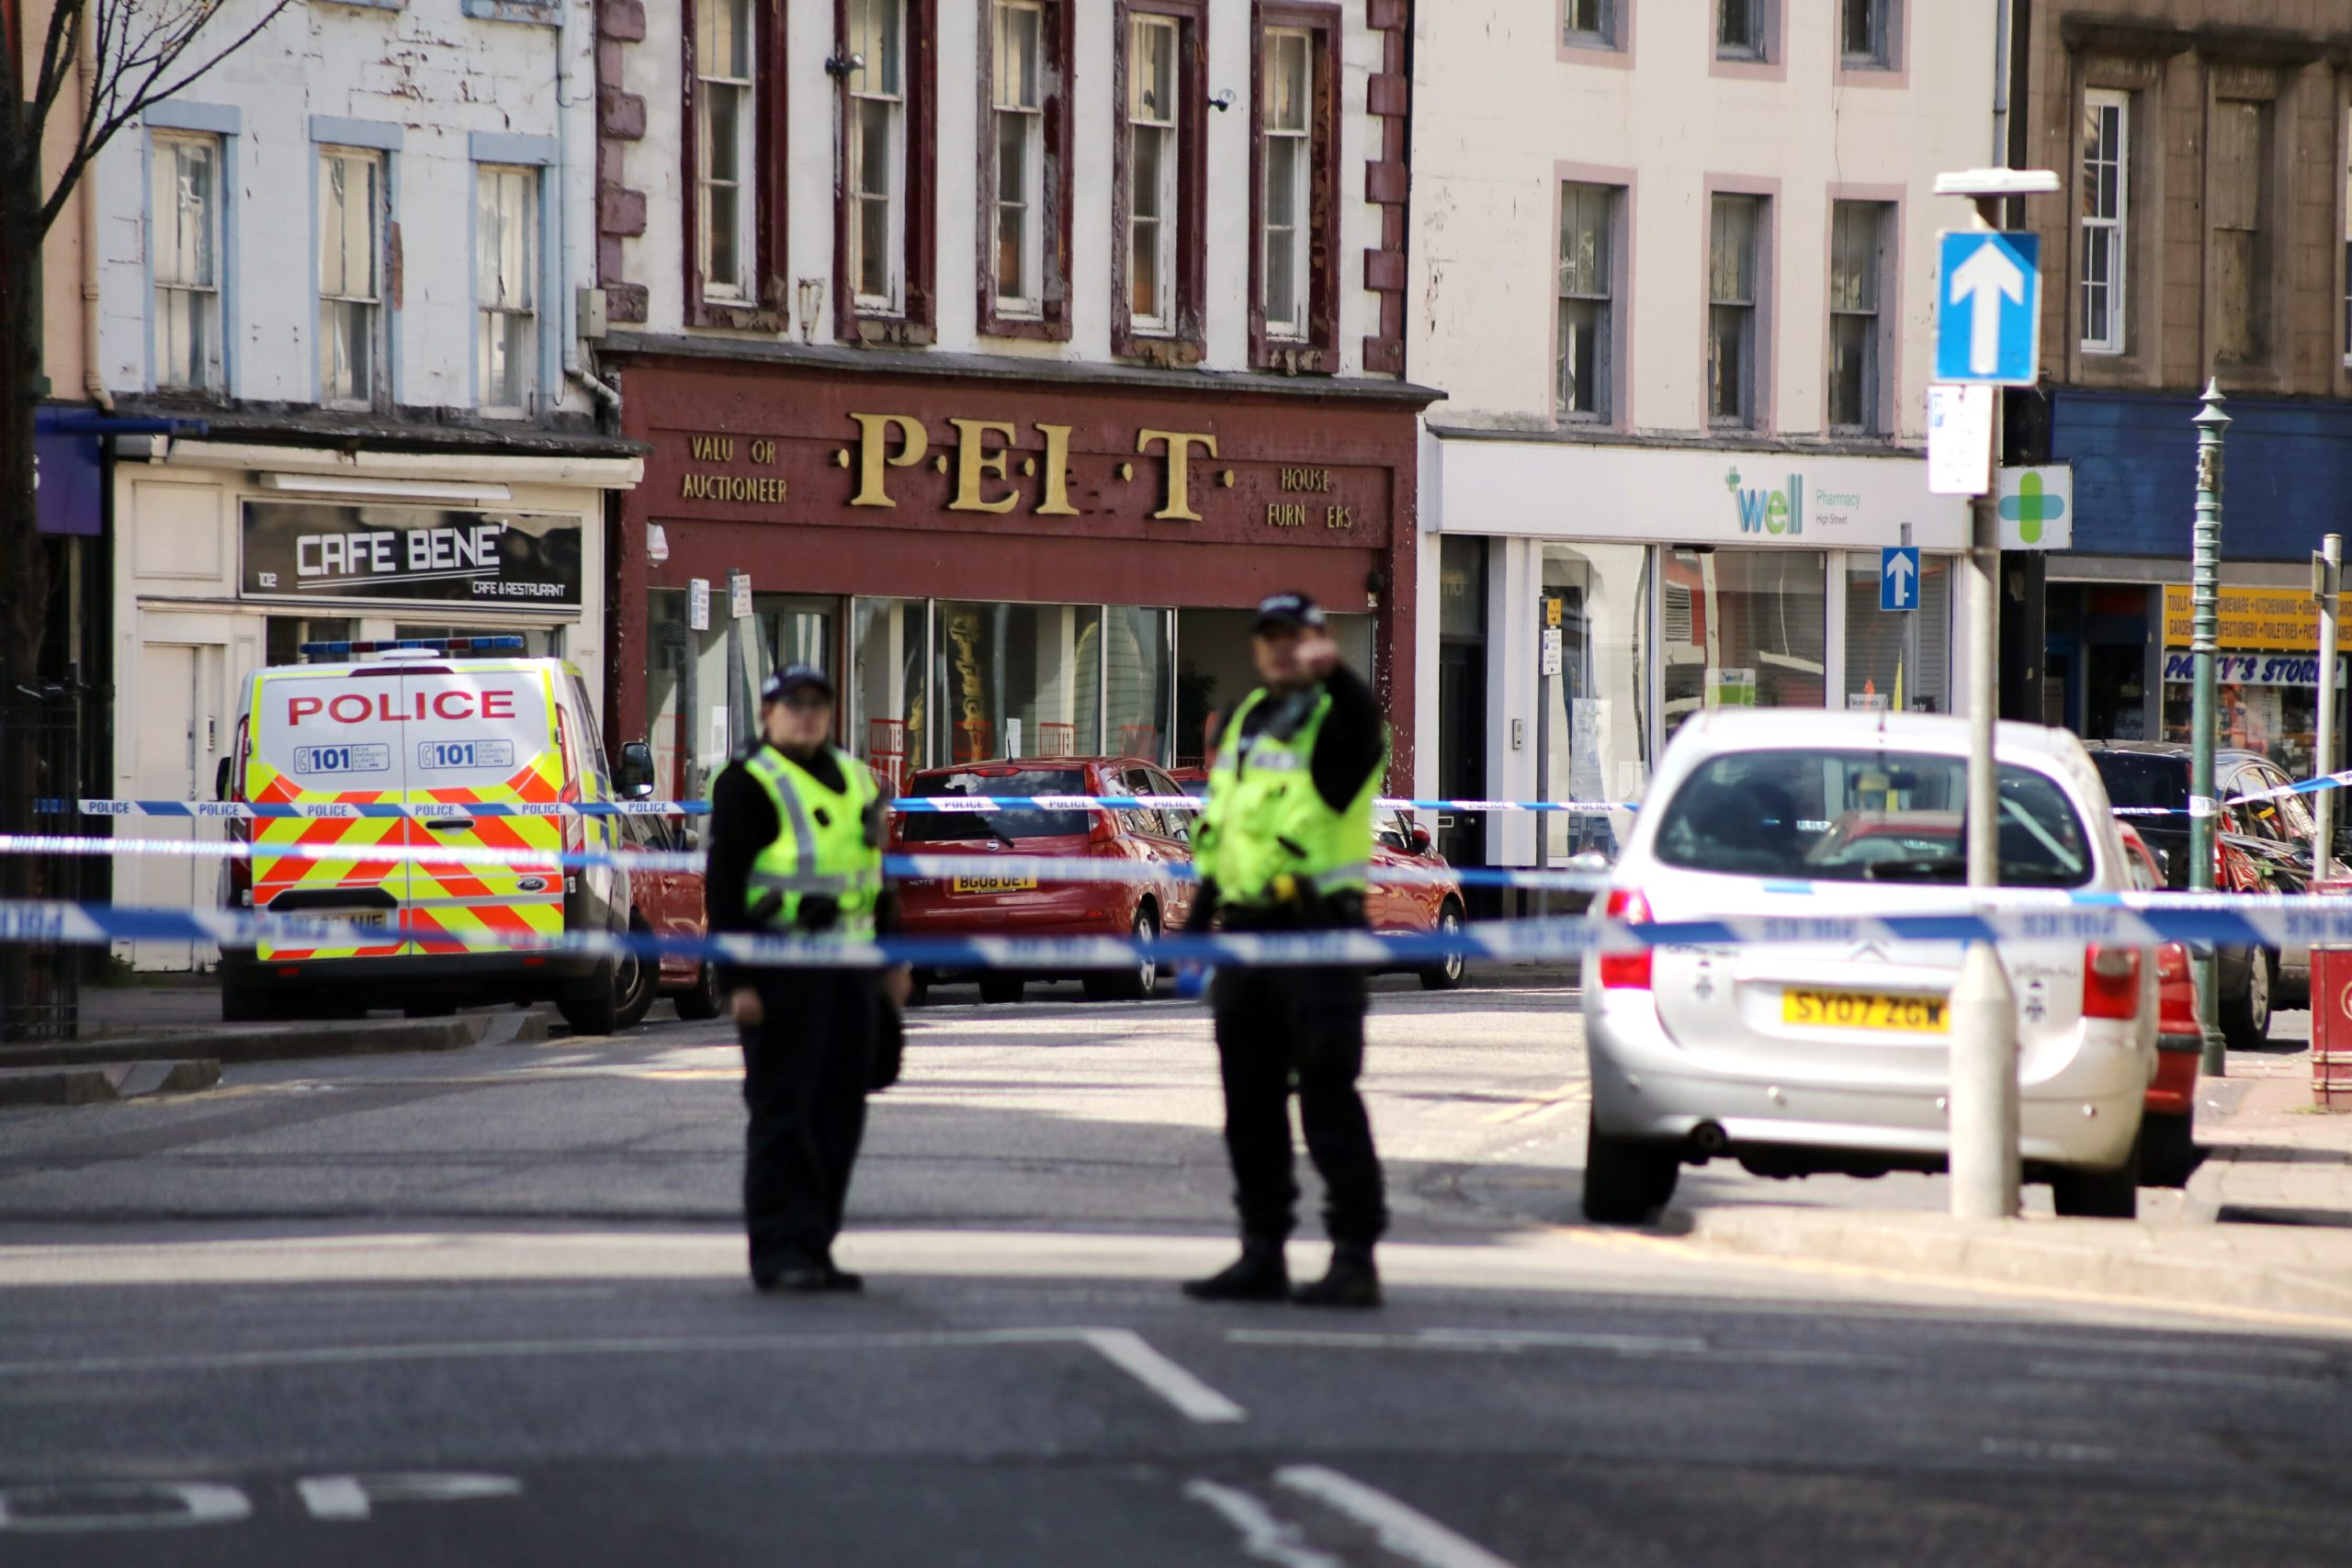 Police on Arbroath High Street on Tuesday.